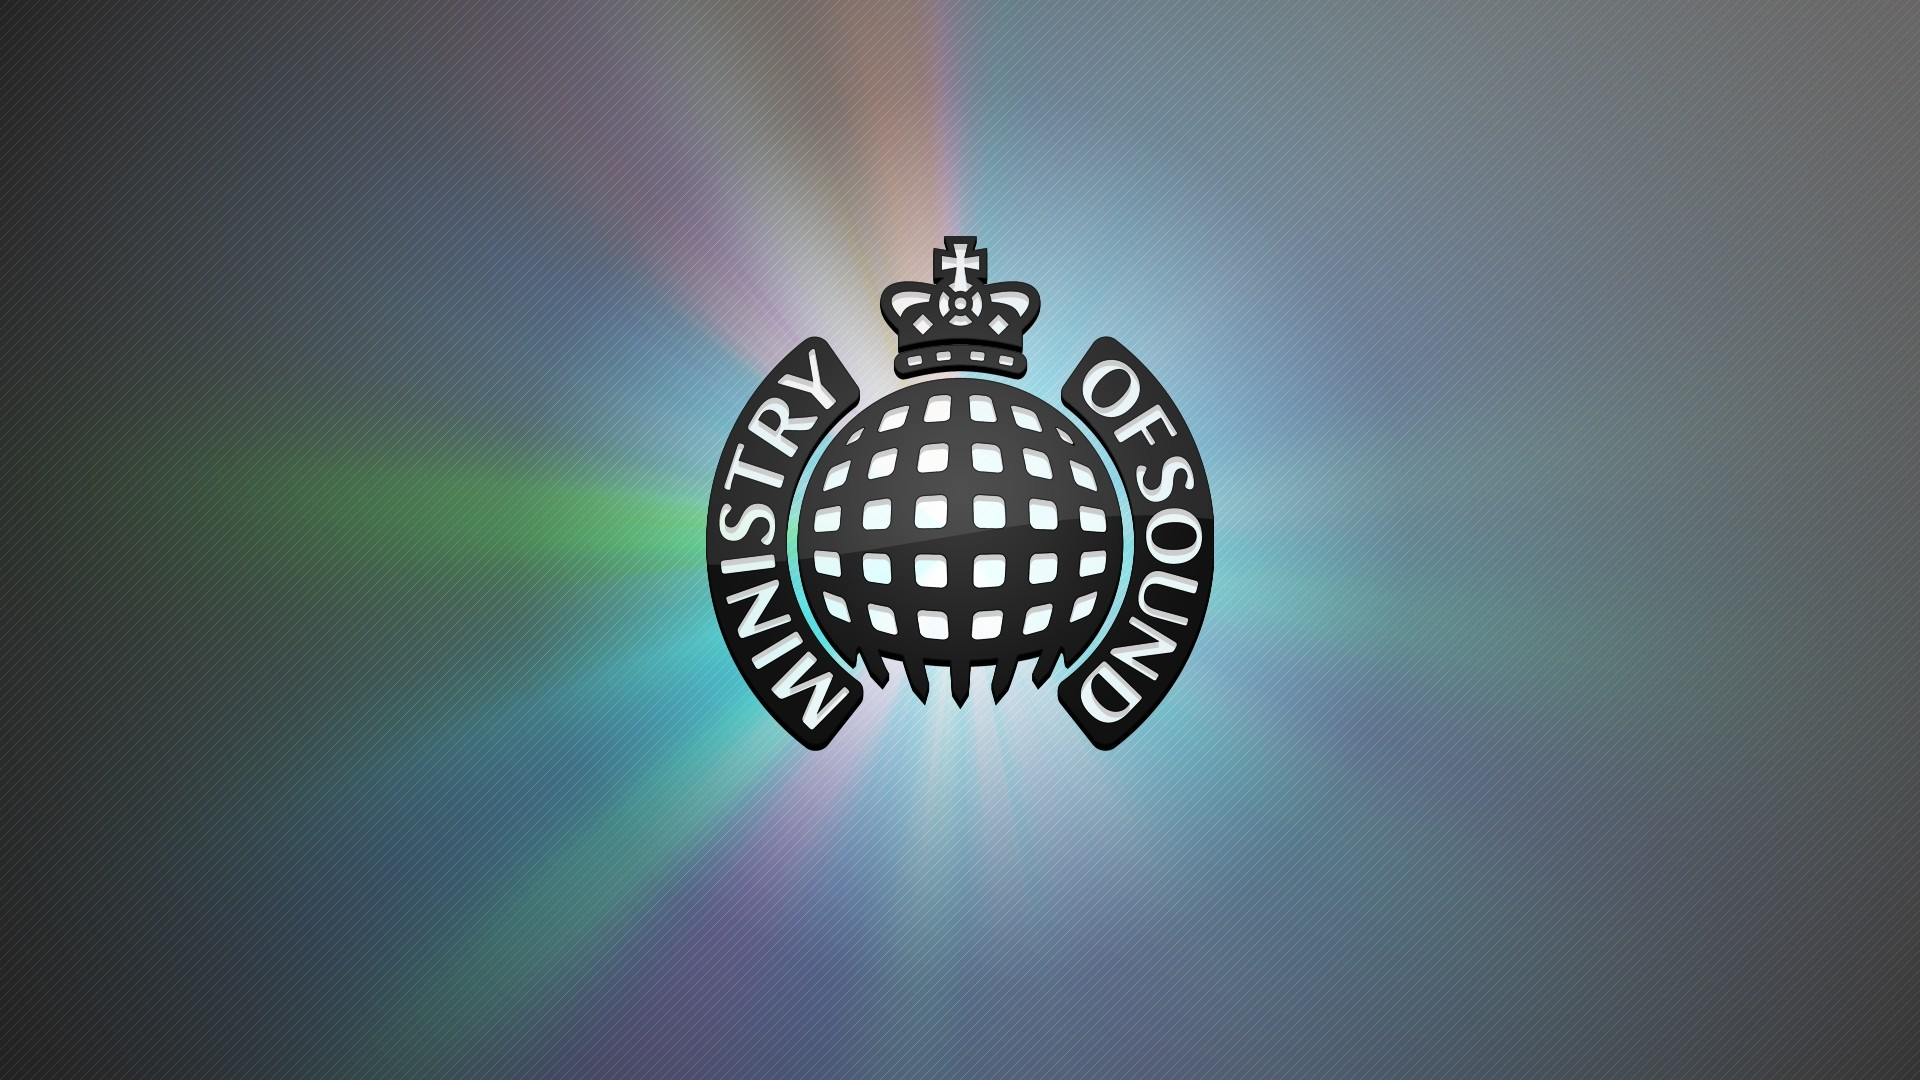 Ministry Of Sound Wallpapers (54 Wallpapers)